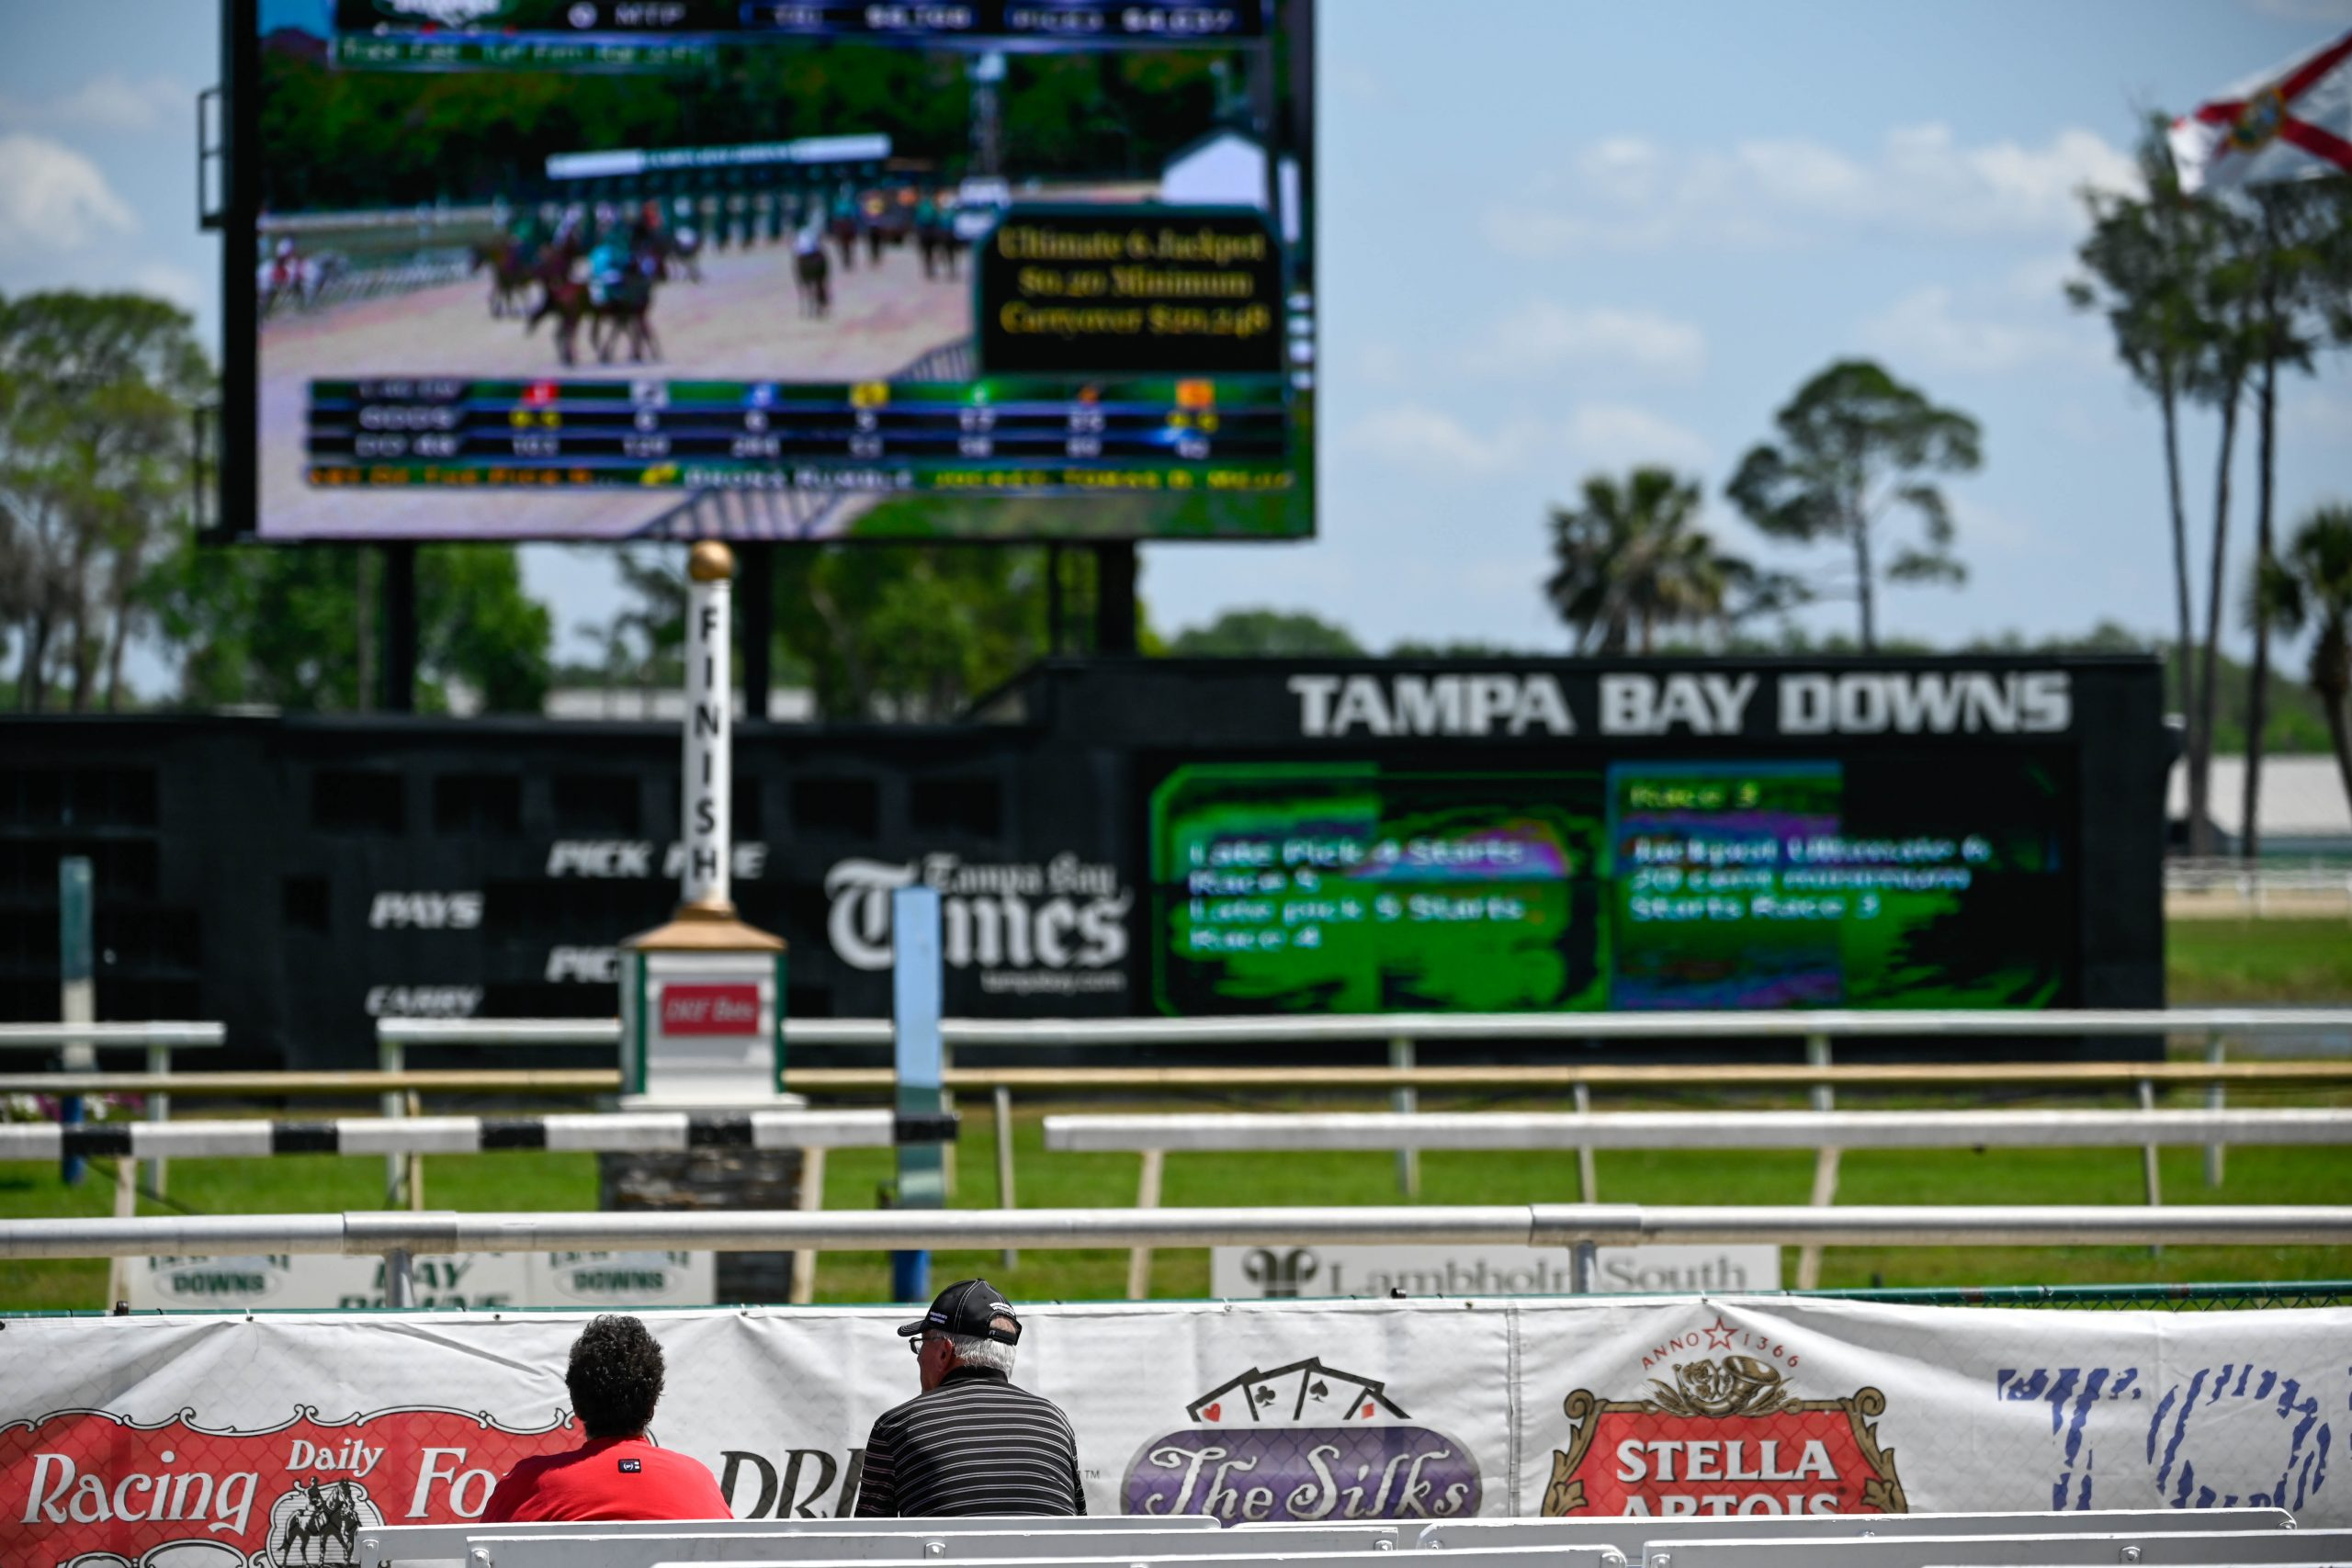 Tampa Bay Downs Rack Track Guide